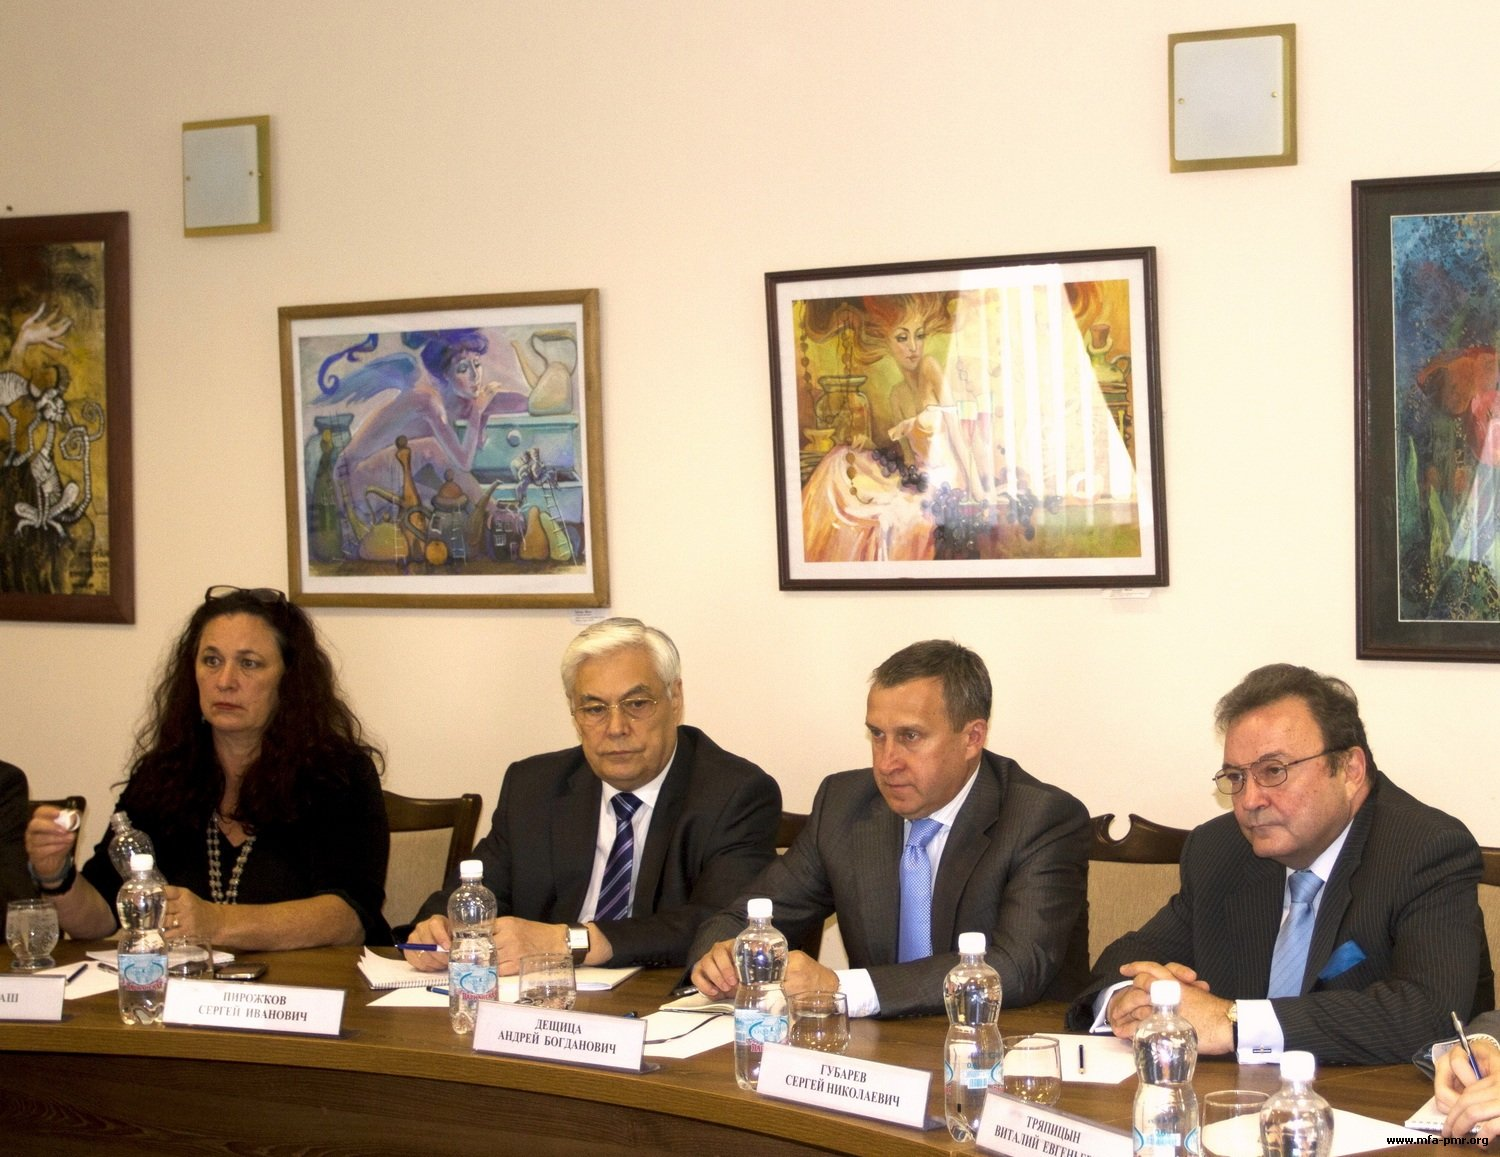 Nina Shtanski met with Delegations of current OSCE Chairmanship and co-mediators in the Moldo-Pridnestrovian Settlement